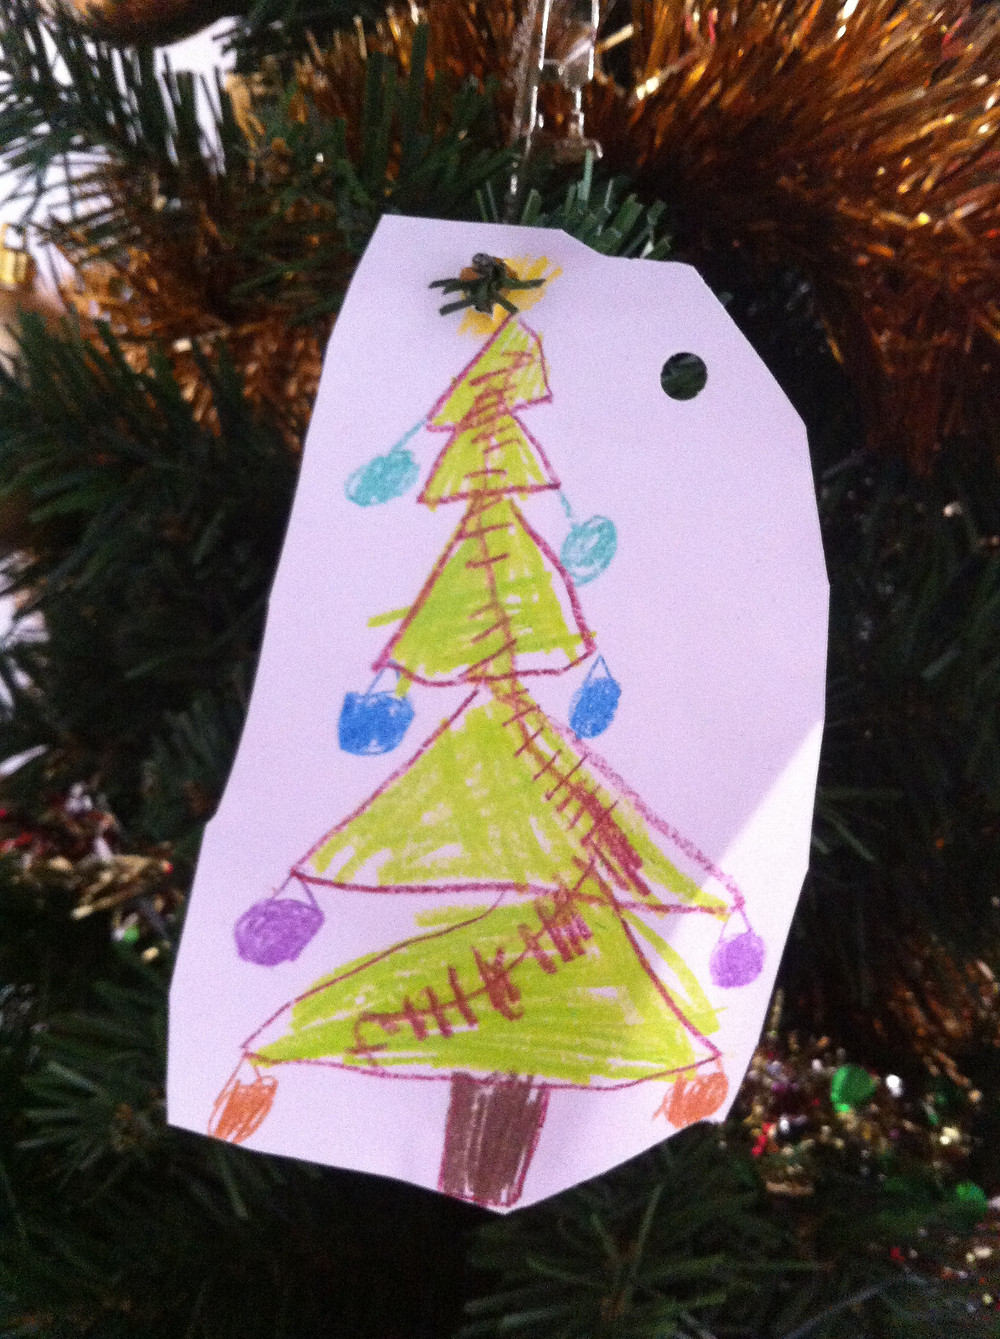 Christmas tree drawing by child